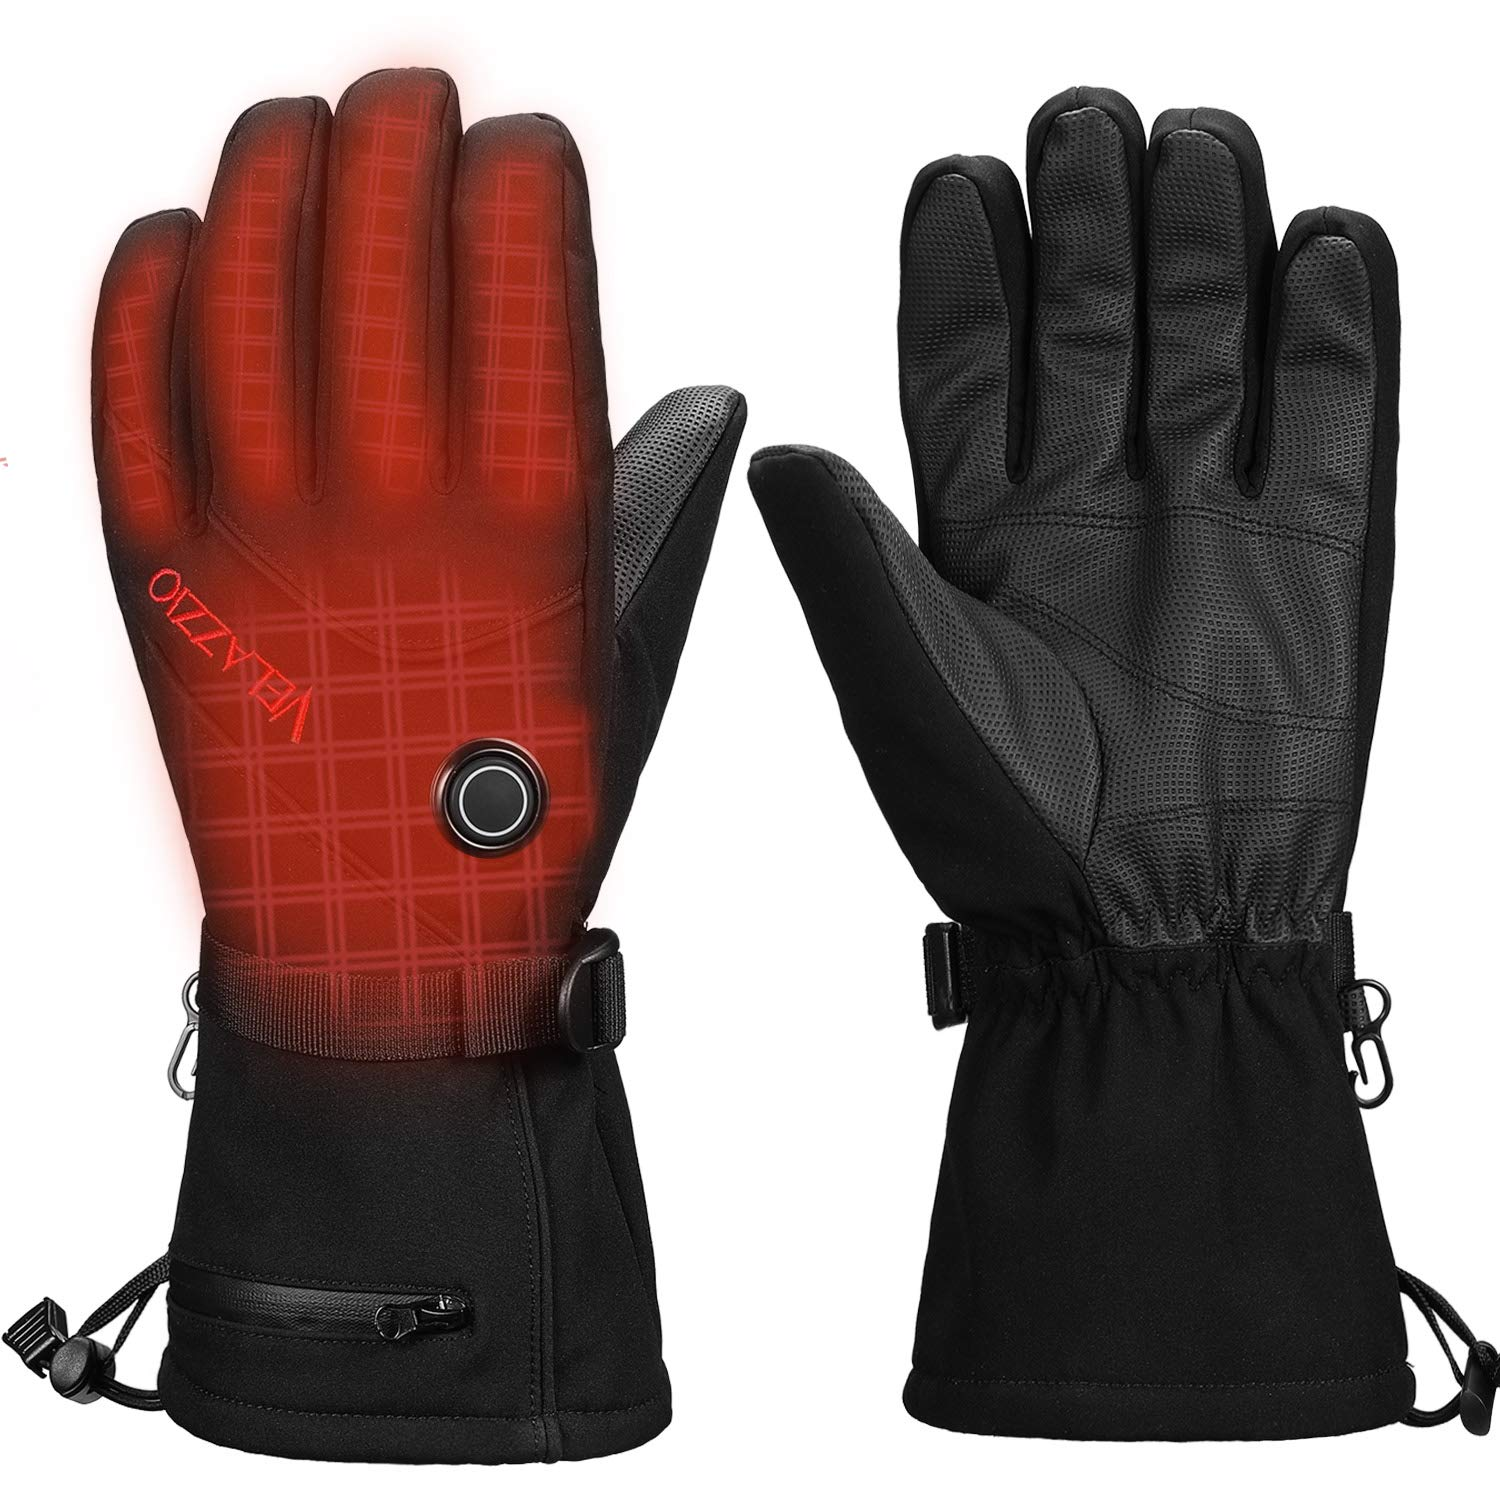 VELAZZIO Thermo1 Battery Heated Gloves - Size S by VELAZZIO